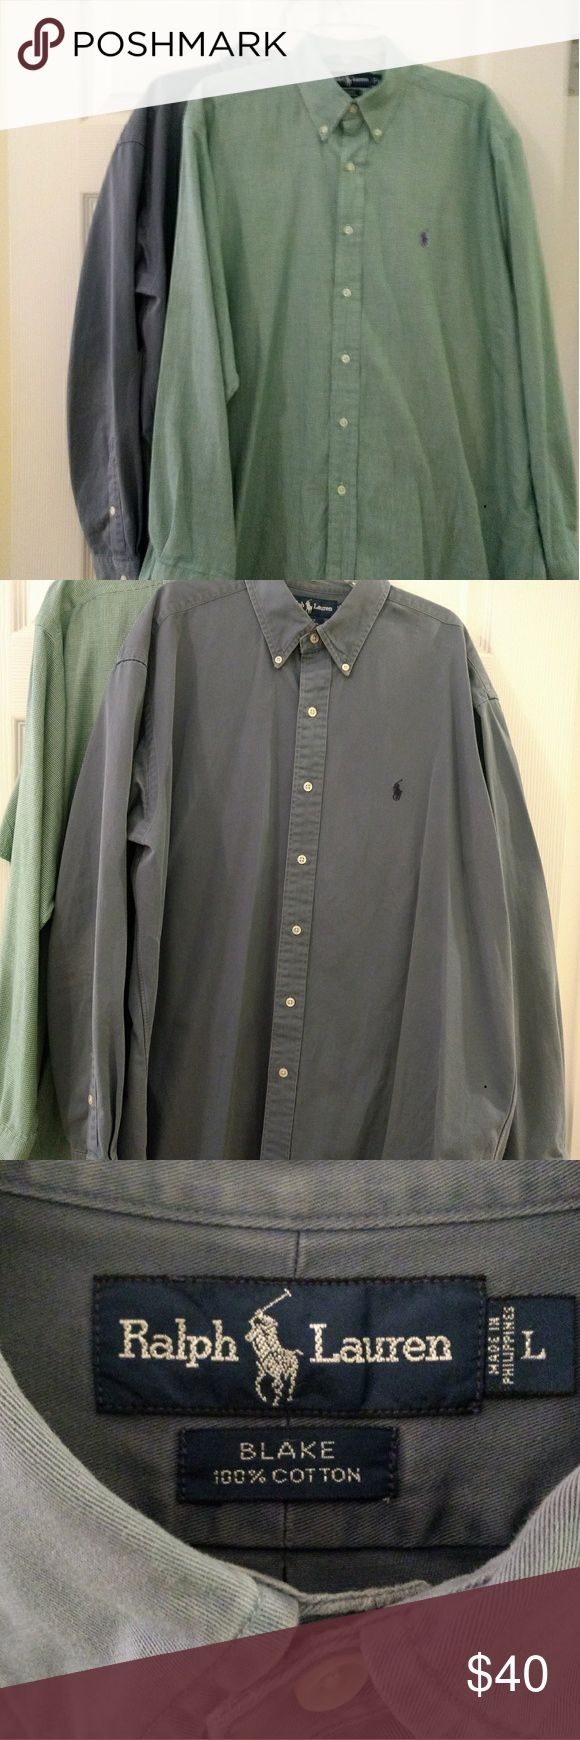 Polo Button-down Shirts- Size L This pair of Polo shirts have been gently worn and are in very good condition. The green herringbone shirt is light and perfect for spring! The slate blue shirt is a heavy cotton and will keep one warm in the cooler months. Polo by Ralph Lauren Shirts Dress Shirts